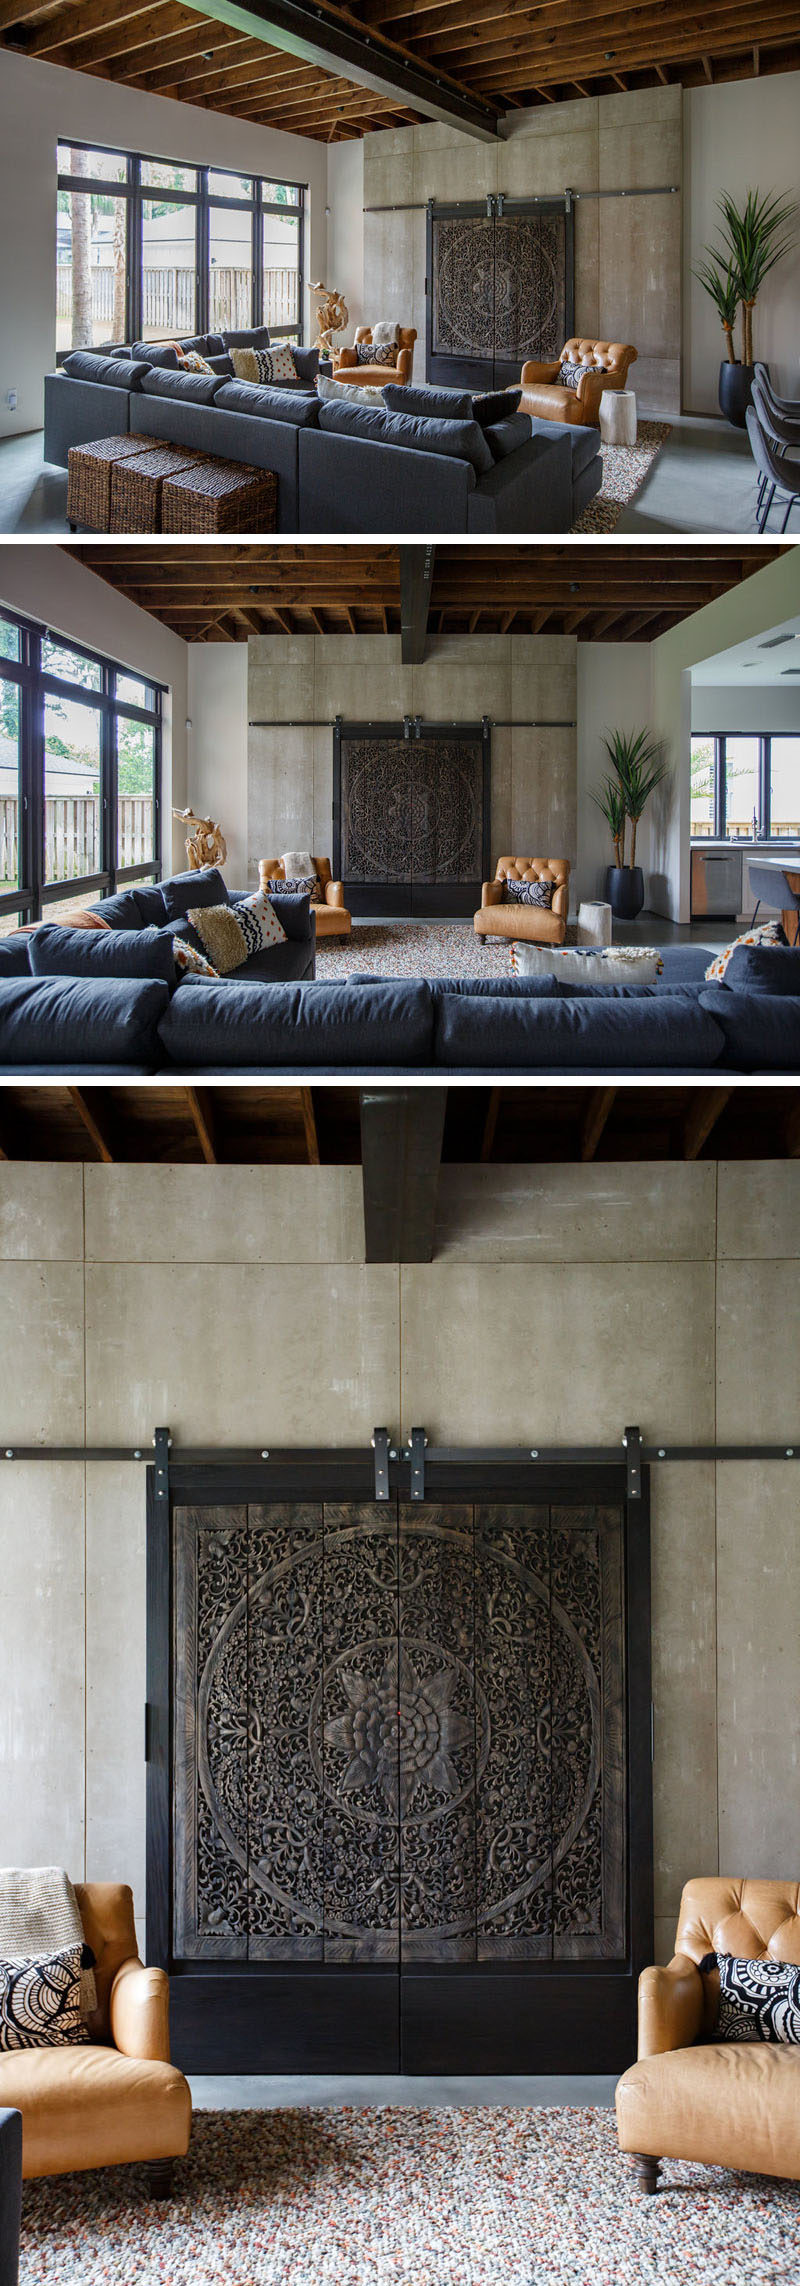 In this modern living room, artistic carved wood panels on a simple metal track hide the television from view when it's not in use. #LivingRoom #InteriorDesign #ArtisticPanels #HideTV